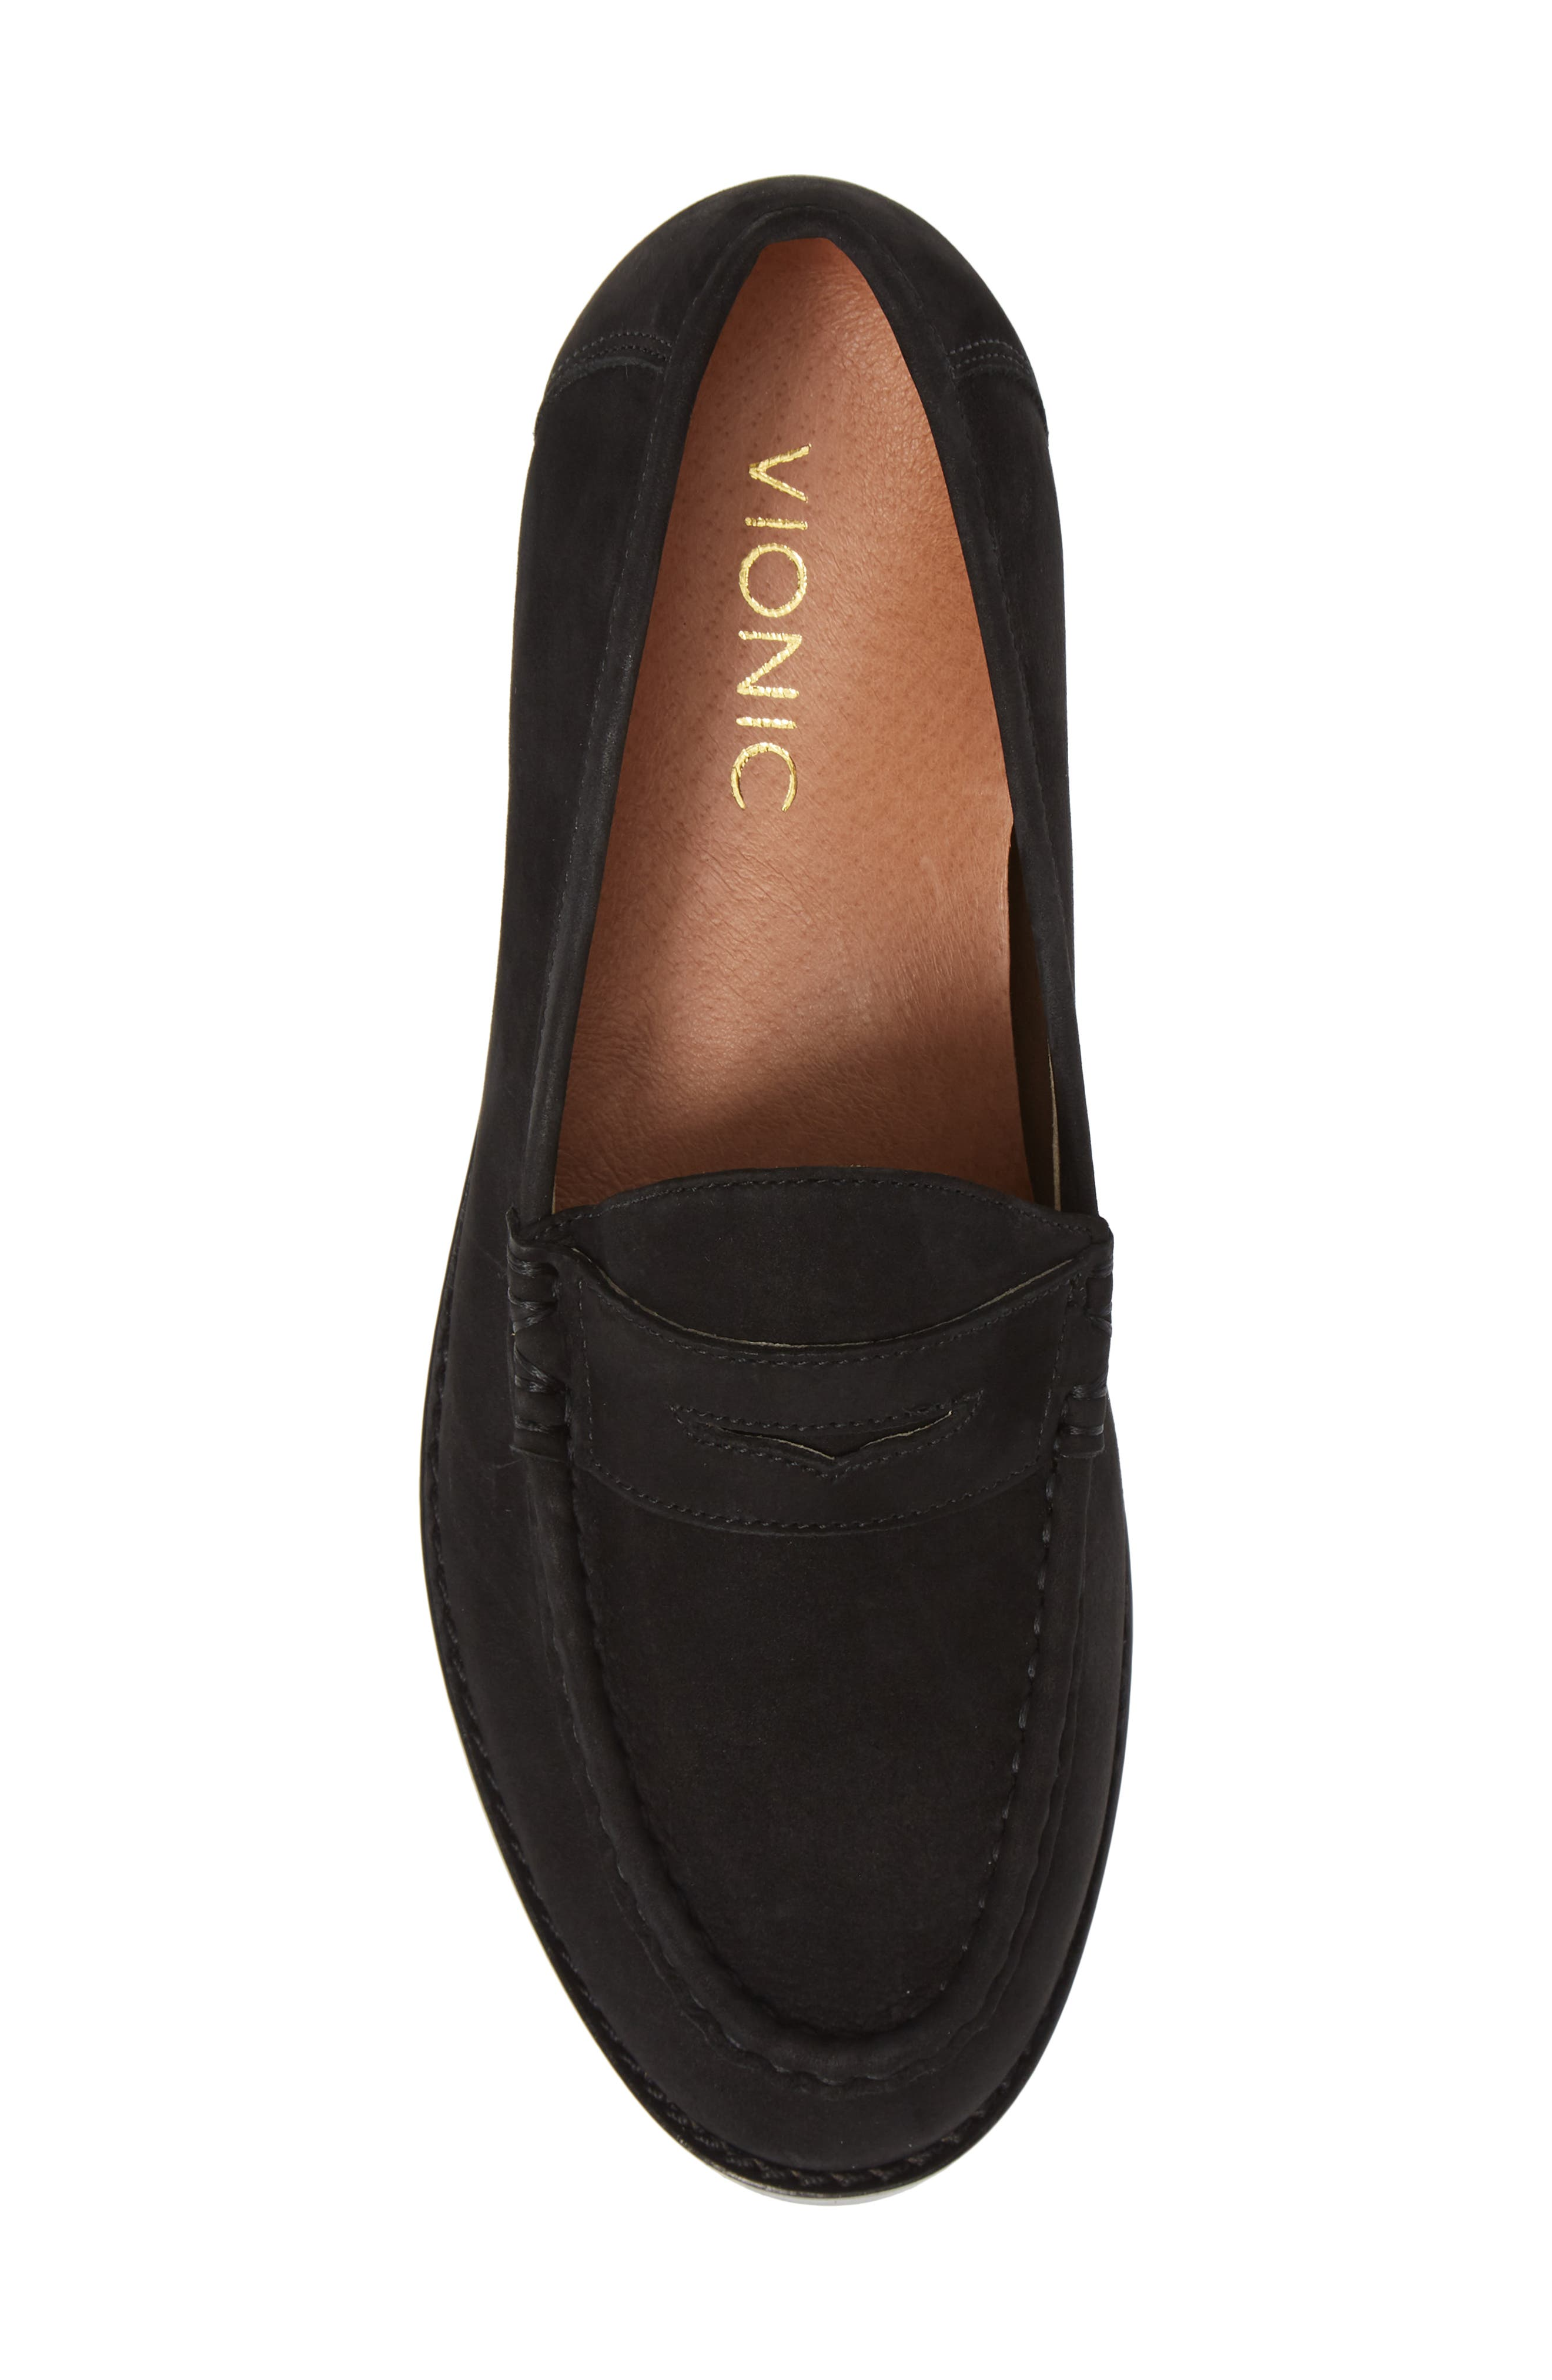 VIONIC, Waverly Loafer, Alternate thumbnail 5, color, BLACK LEATHER